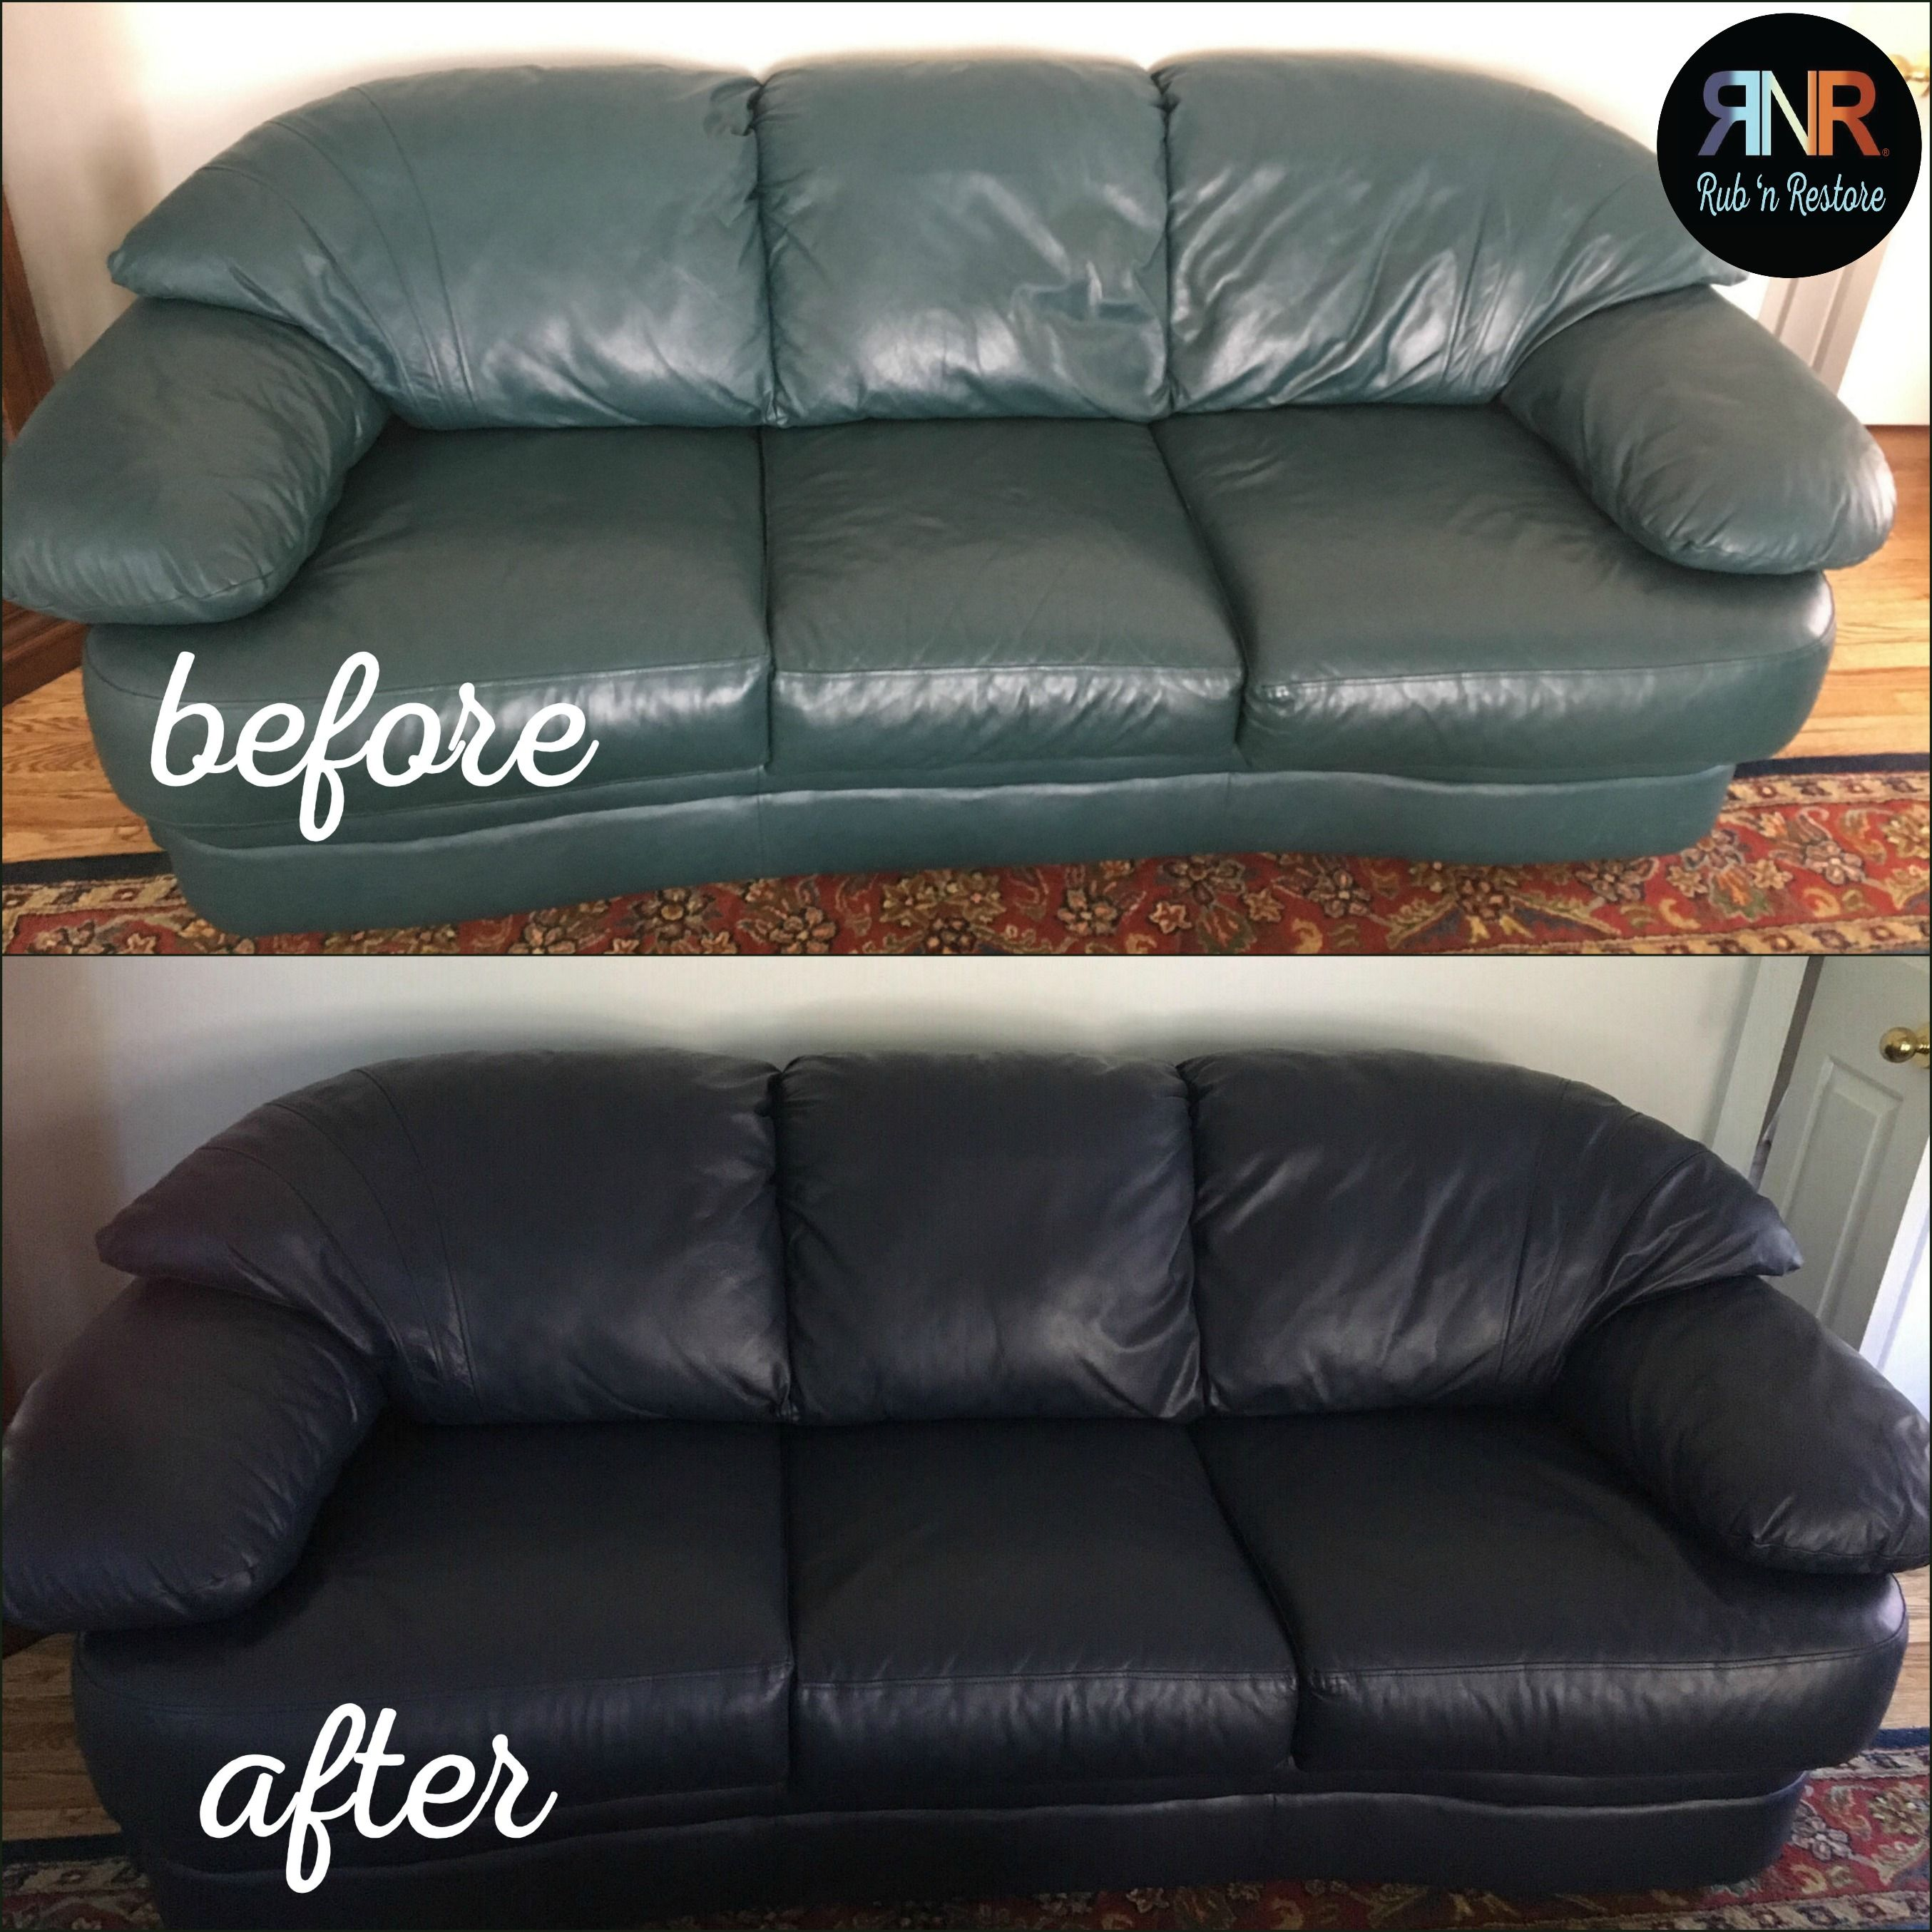 Recolor Leather Sofa Leather Dye For Sofa Functionalities